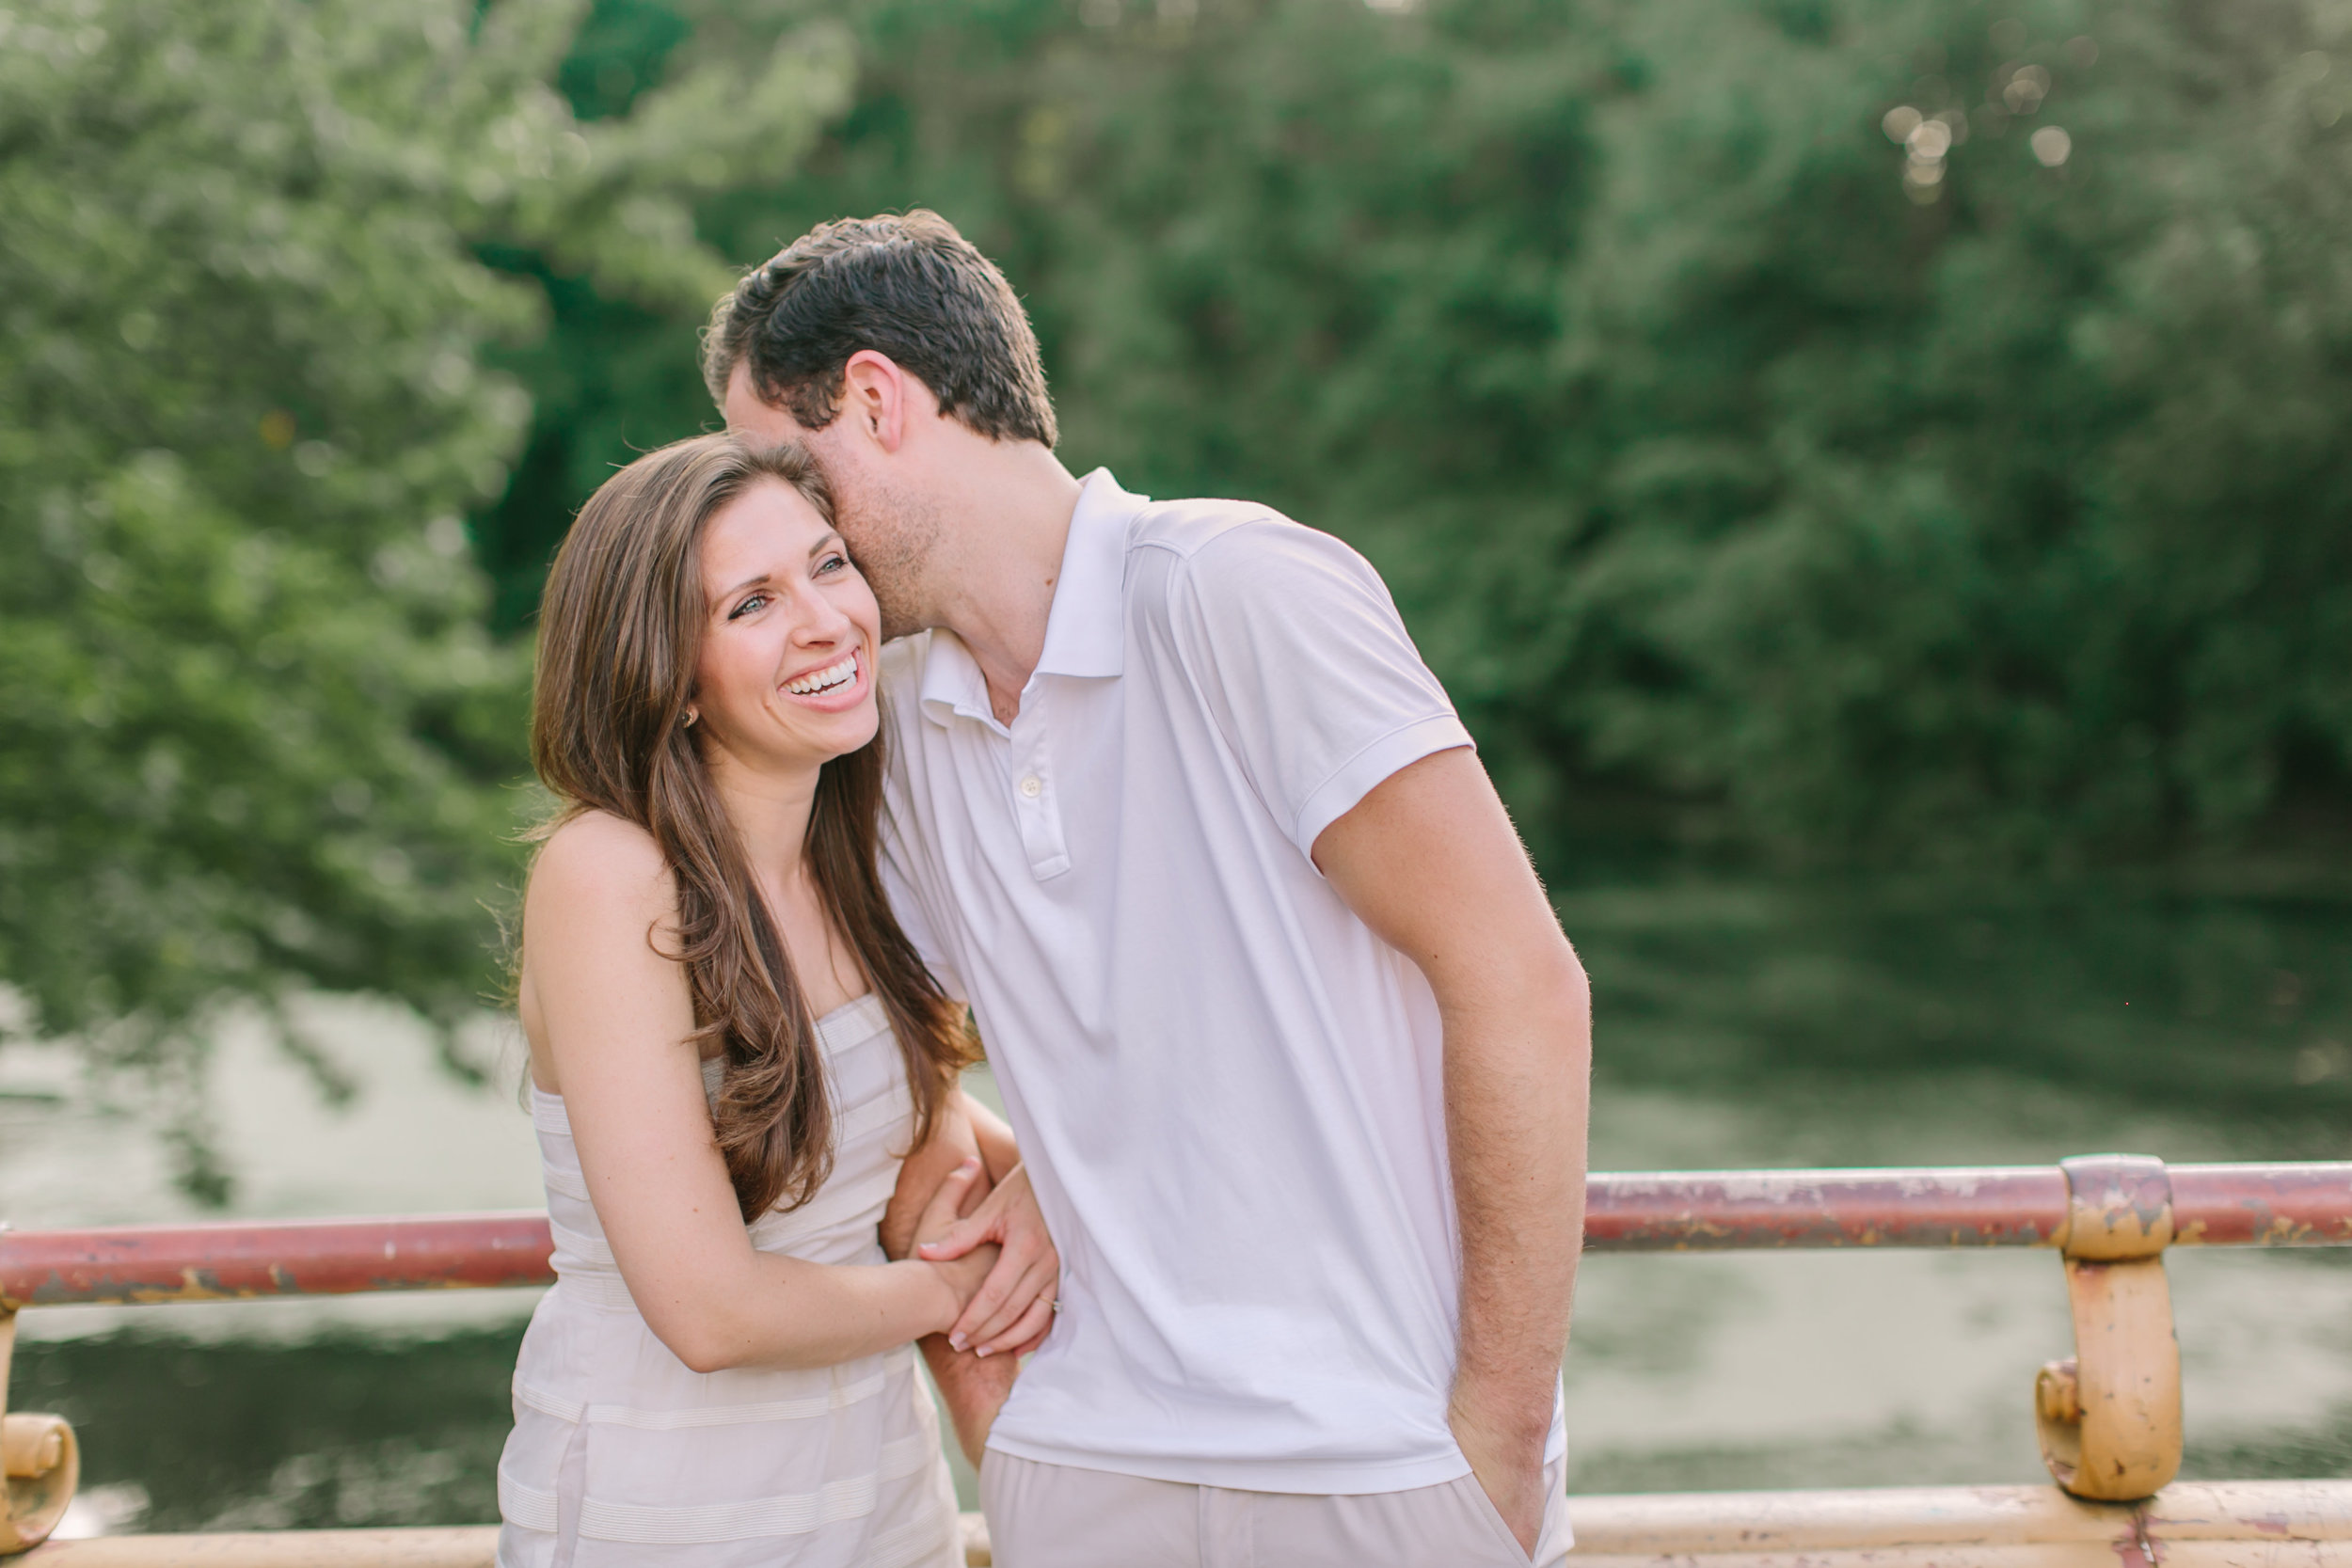 love&lightphotographs_katie&anthony_engagement-34.jpg